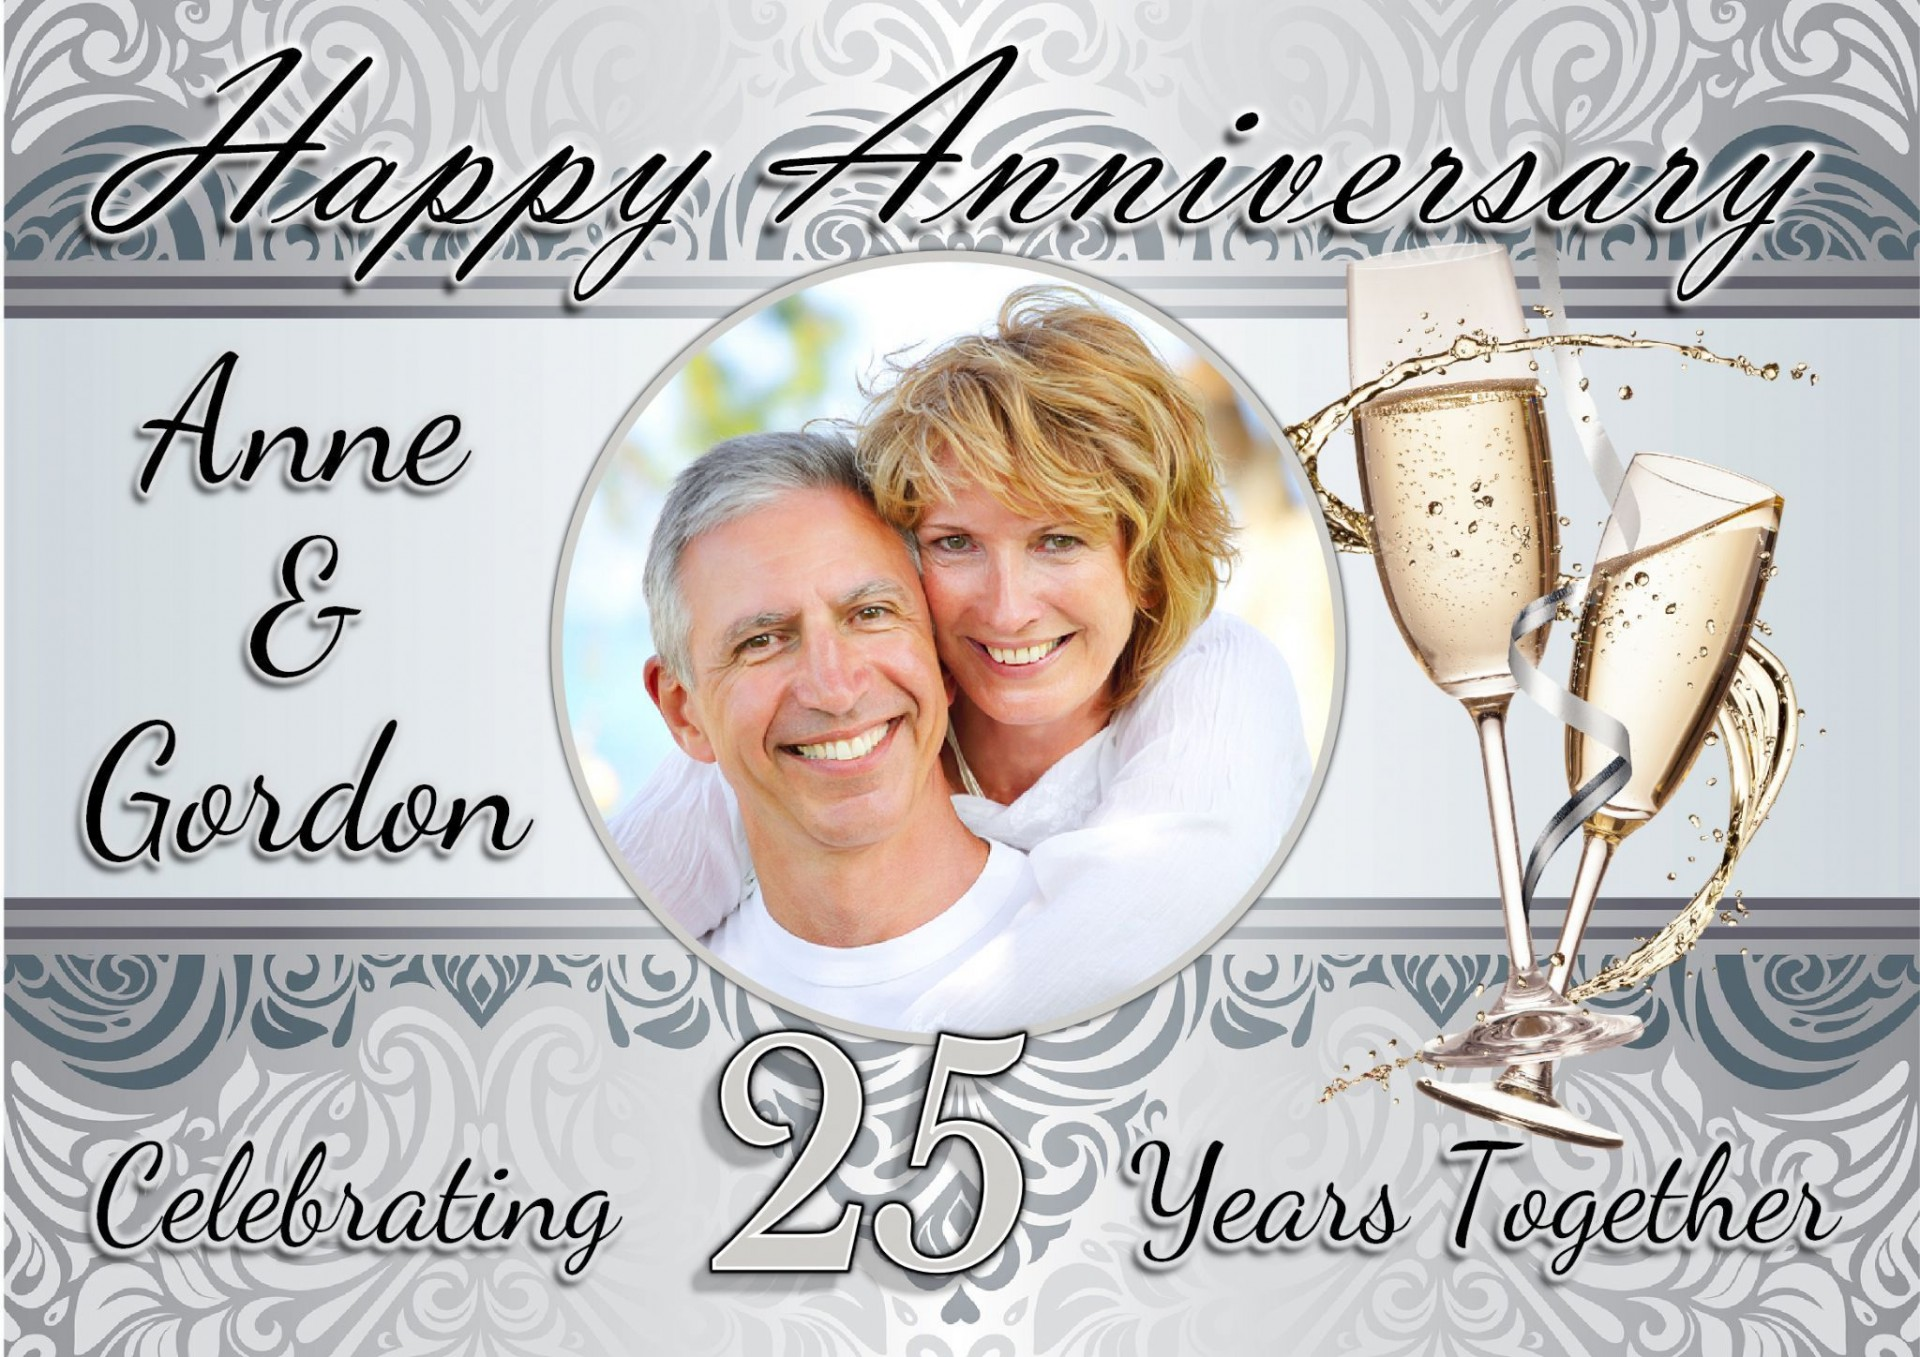 003 Awesome 50th Anniversary Invitation Template Free Picture  For Word Golden Wedding Download1920